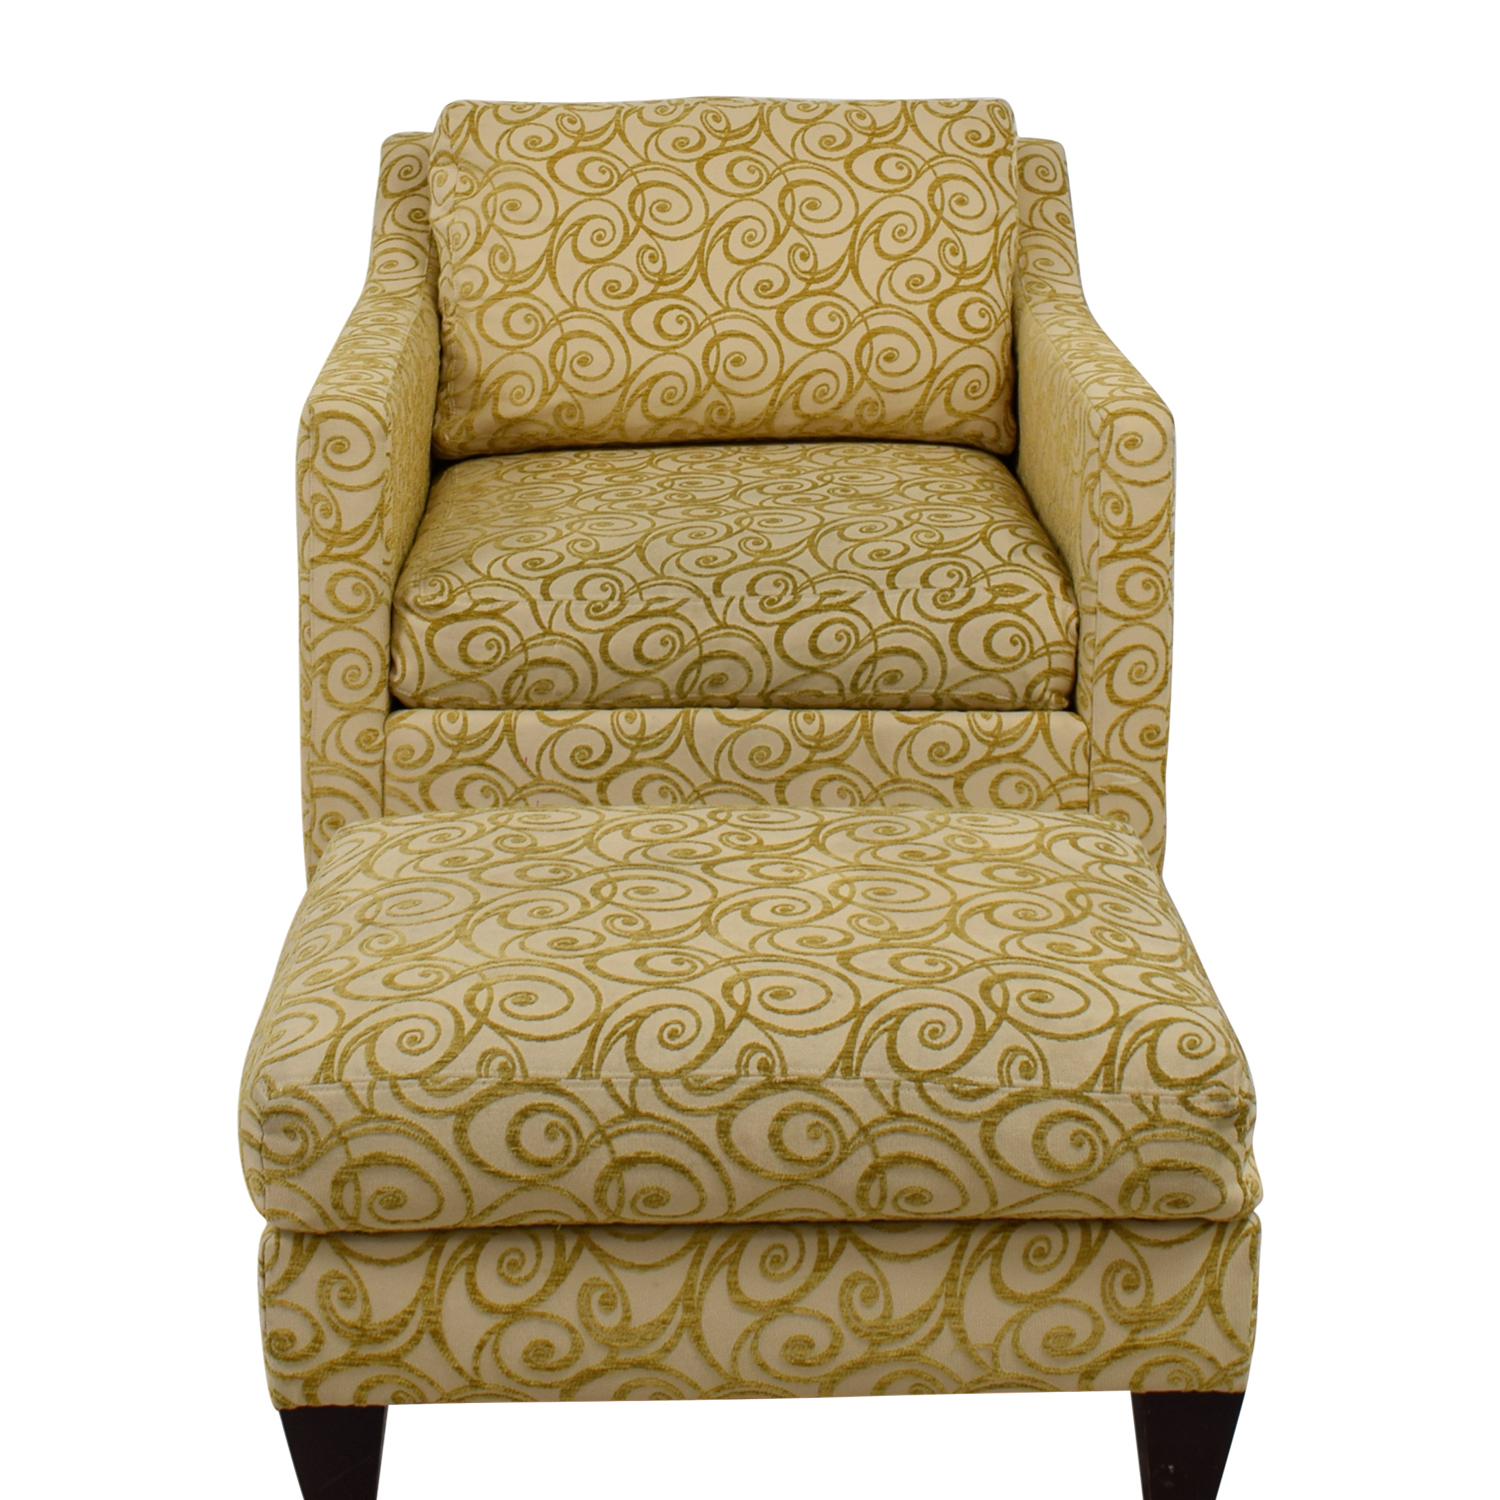 Ethan Allen Club Chairs 79 Off Ethan Allen Ethan Allen Beige And Gold Monterey Chair And Ottoman Chairs